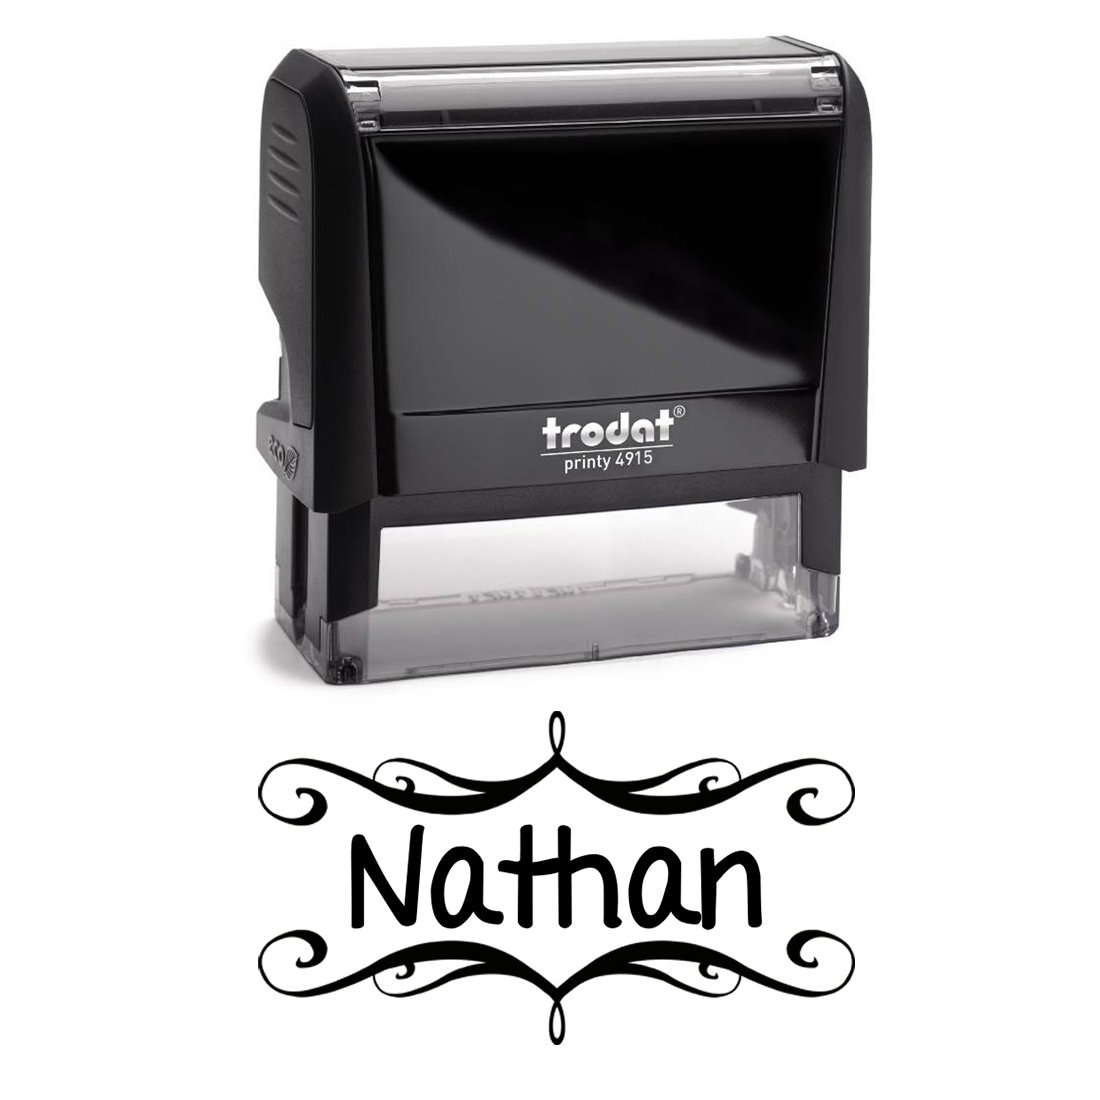 Personalized Kids Name Self Inking Stamp, Decorative Stamp, Custom Font, Customized with Name, Rubber Stamp, Naming Stamp, Children's Signature Stamper, School Book Label Child Name, Stamp (Black)